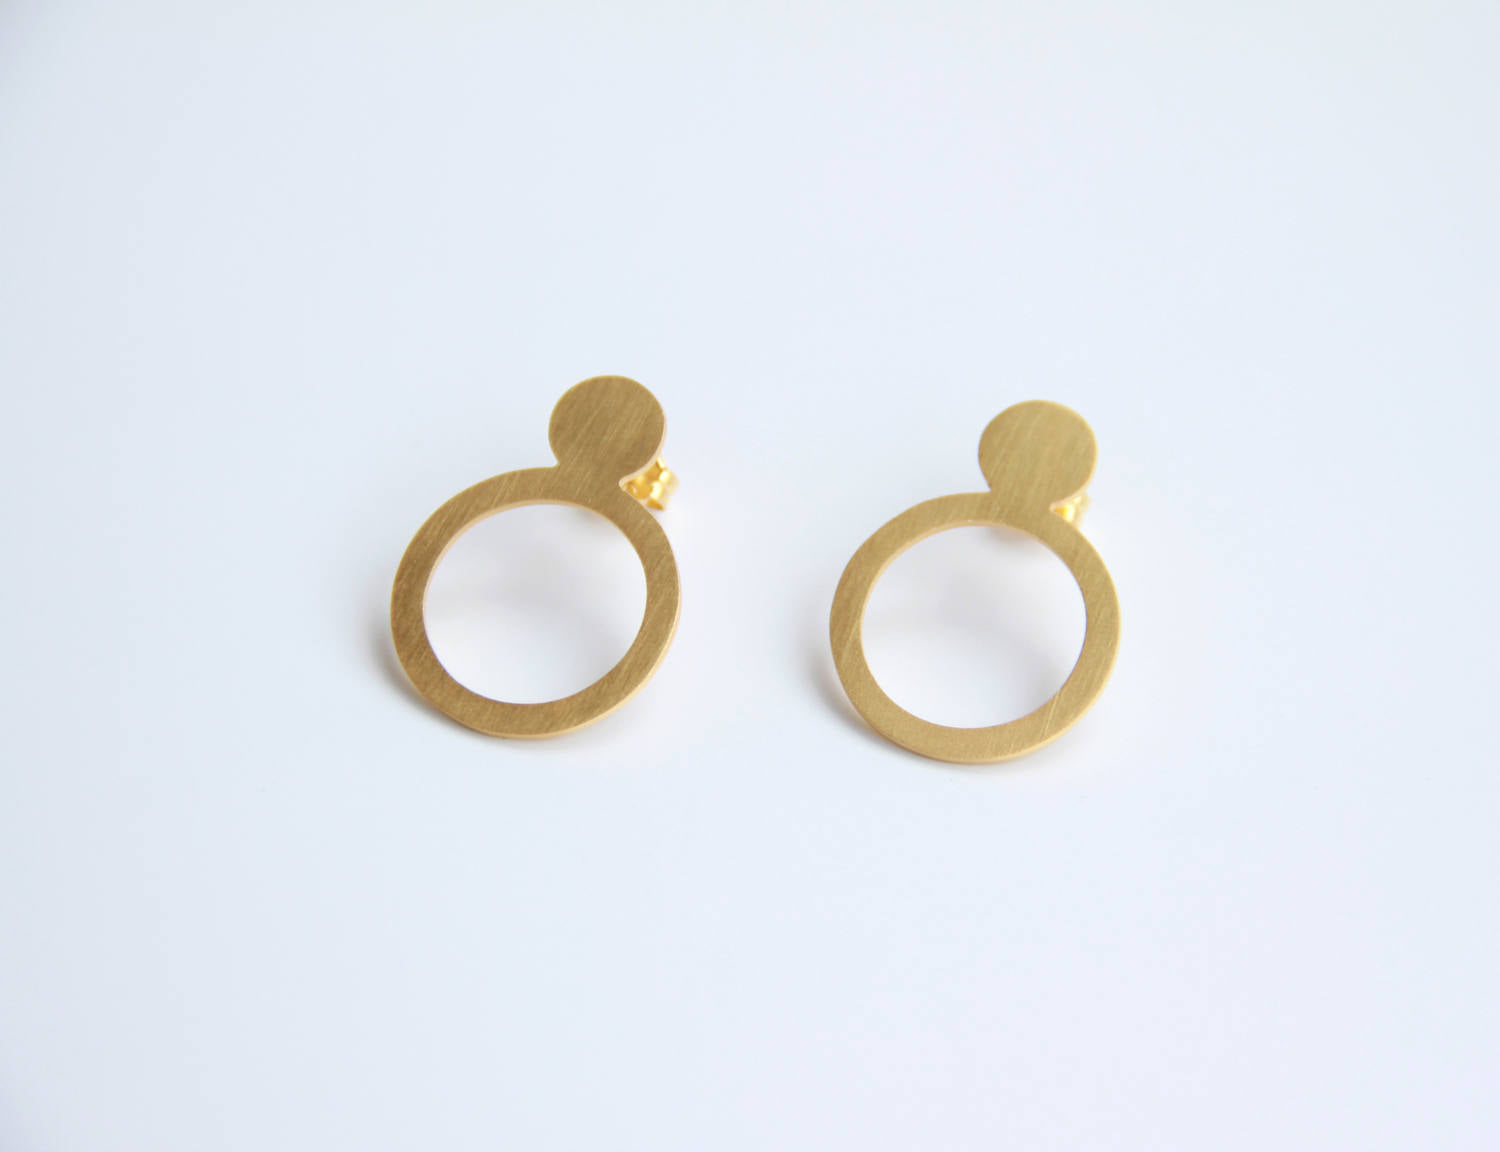 24K Gold Plated Sterling Silver Double Circle Post Earrings